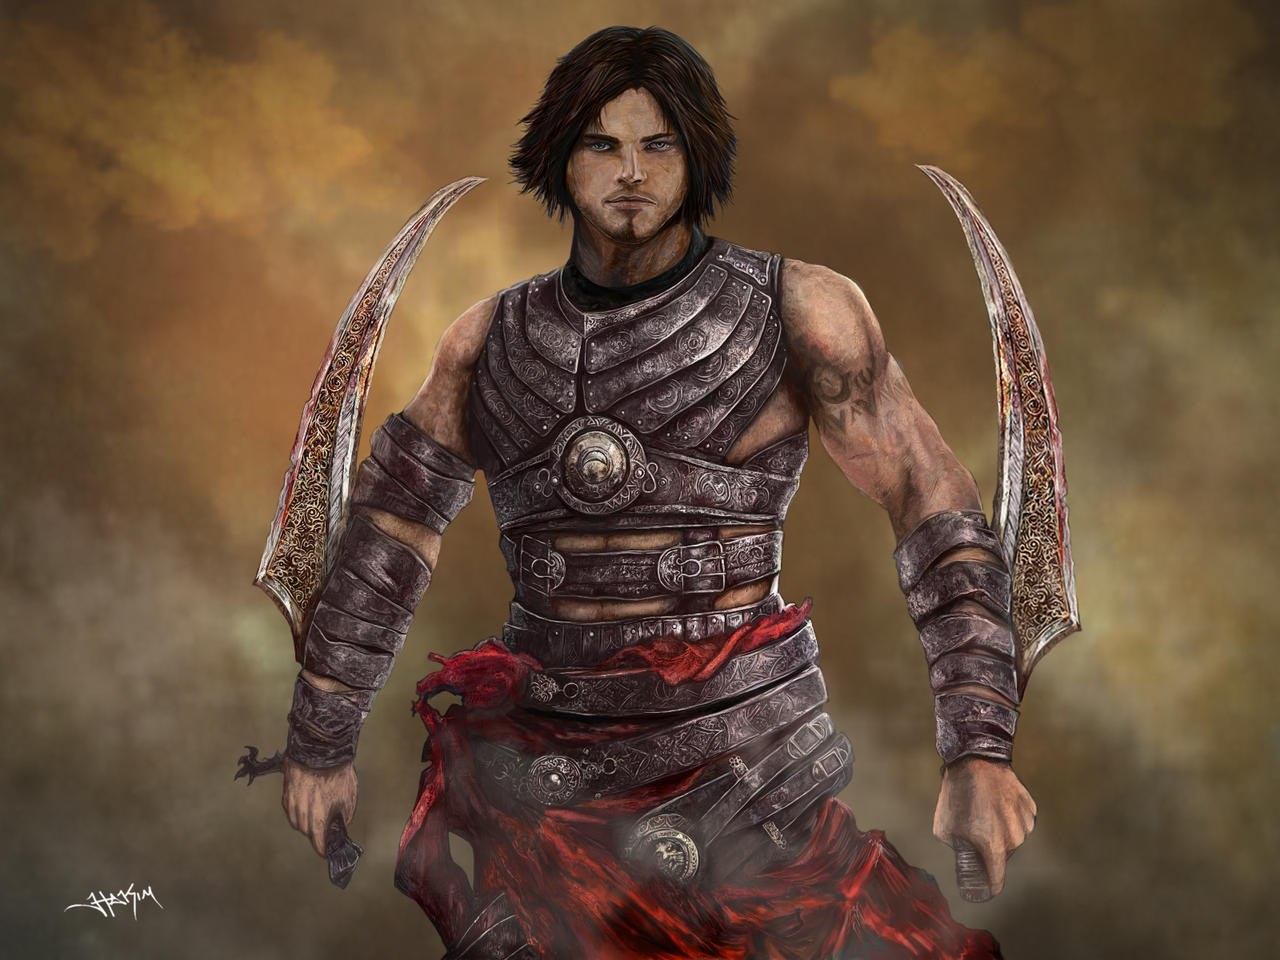 the prince of persia digital paintinghax09 on deviantart